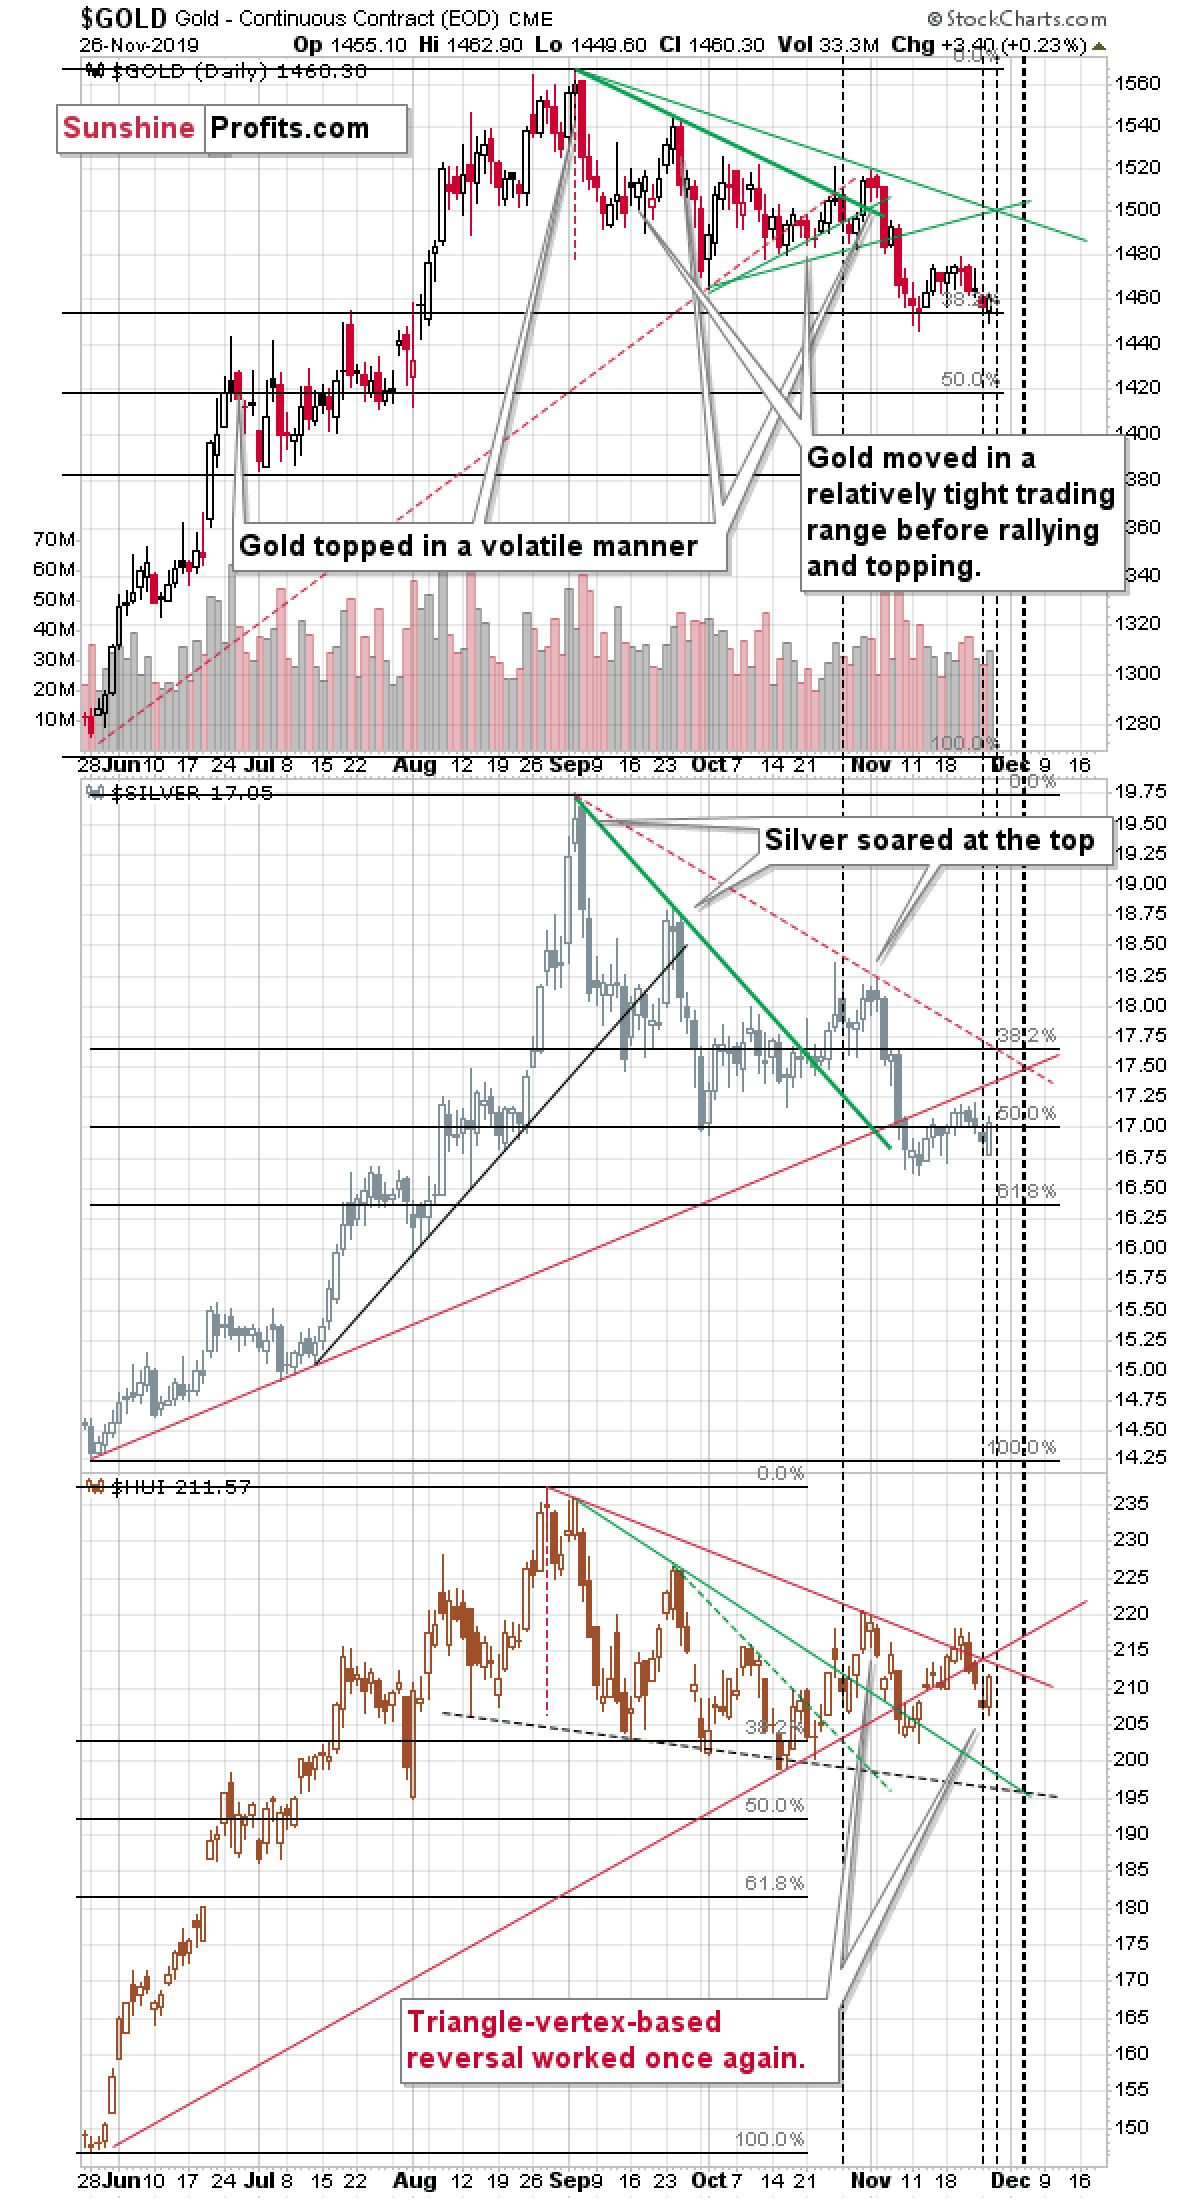 Another Precious Metals Reversal